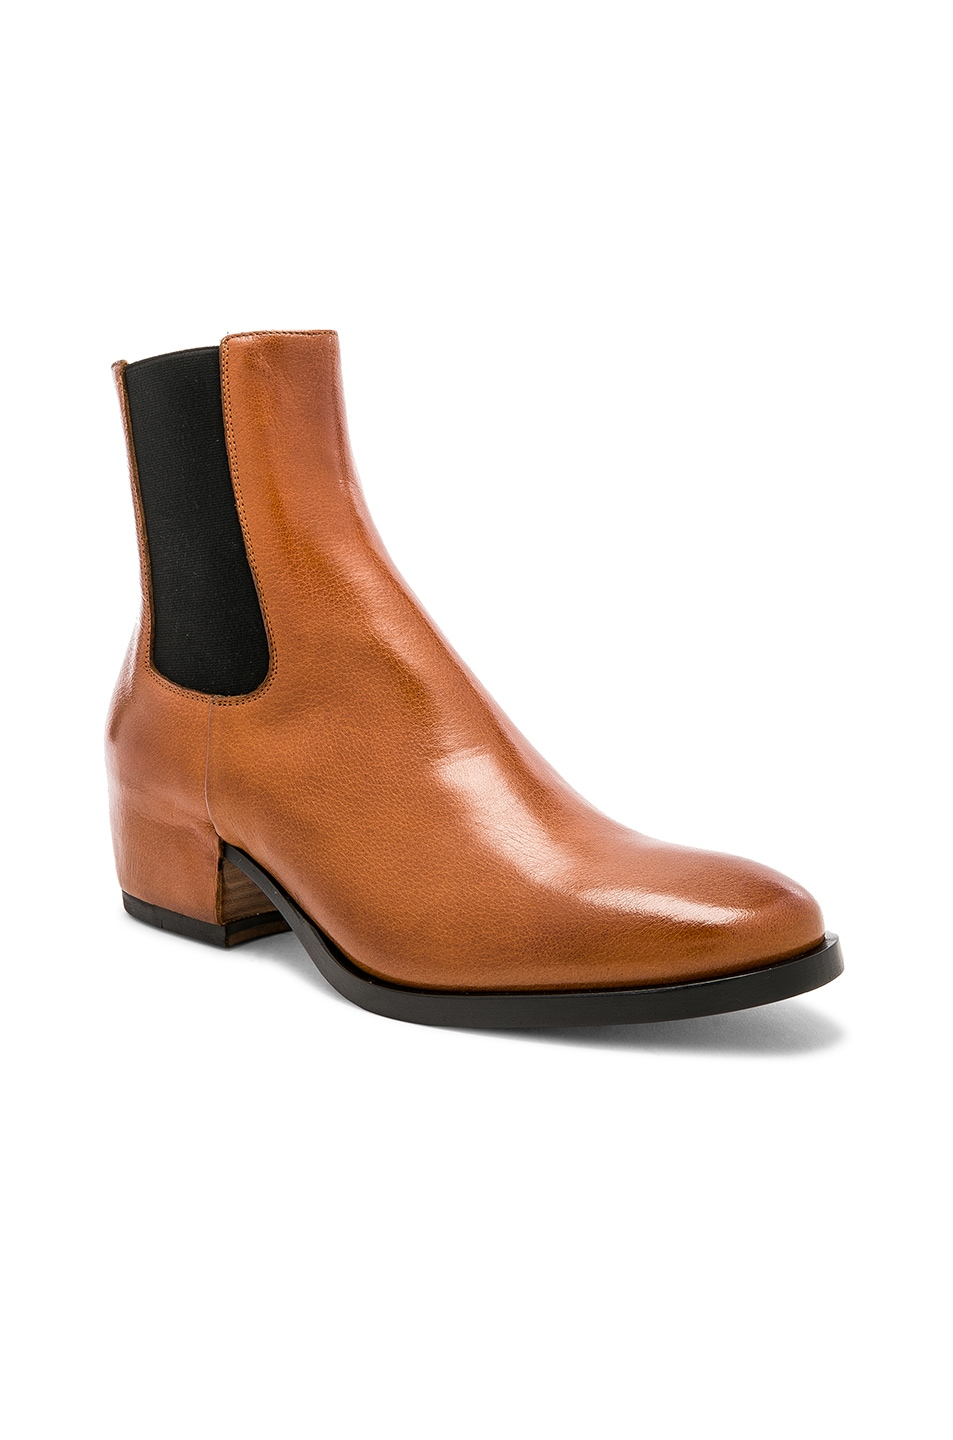 Image 1 of Givenchy Cuban Heel Leather Chelsea Boots in Cognac Brown 427ab1c68427